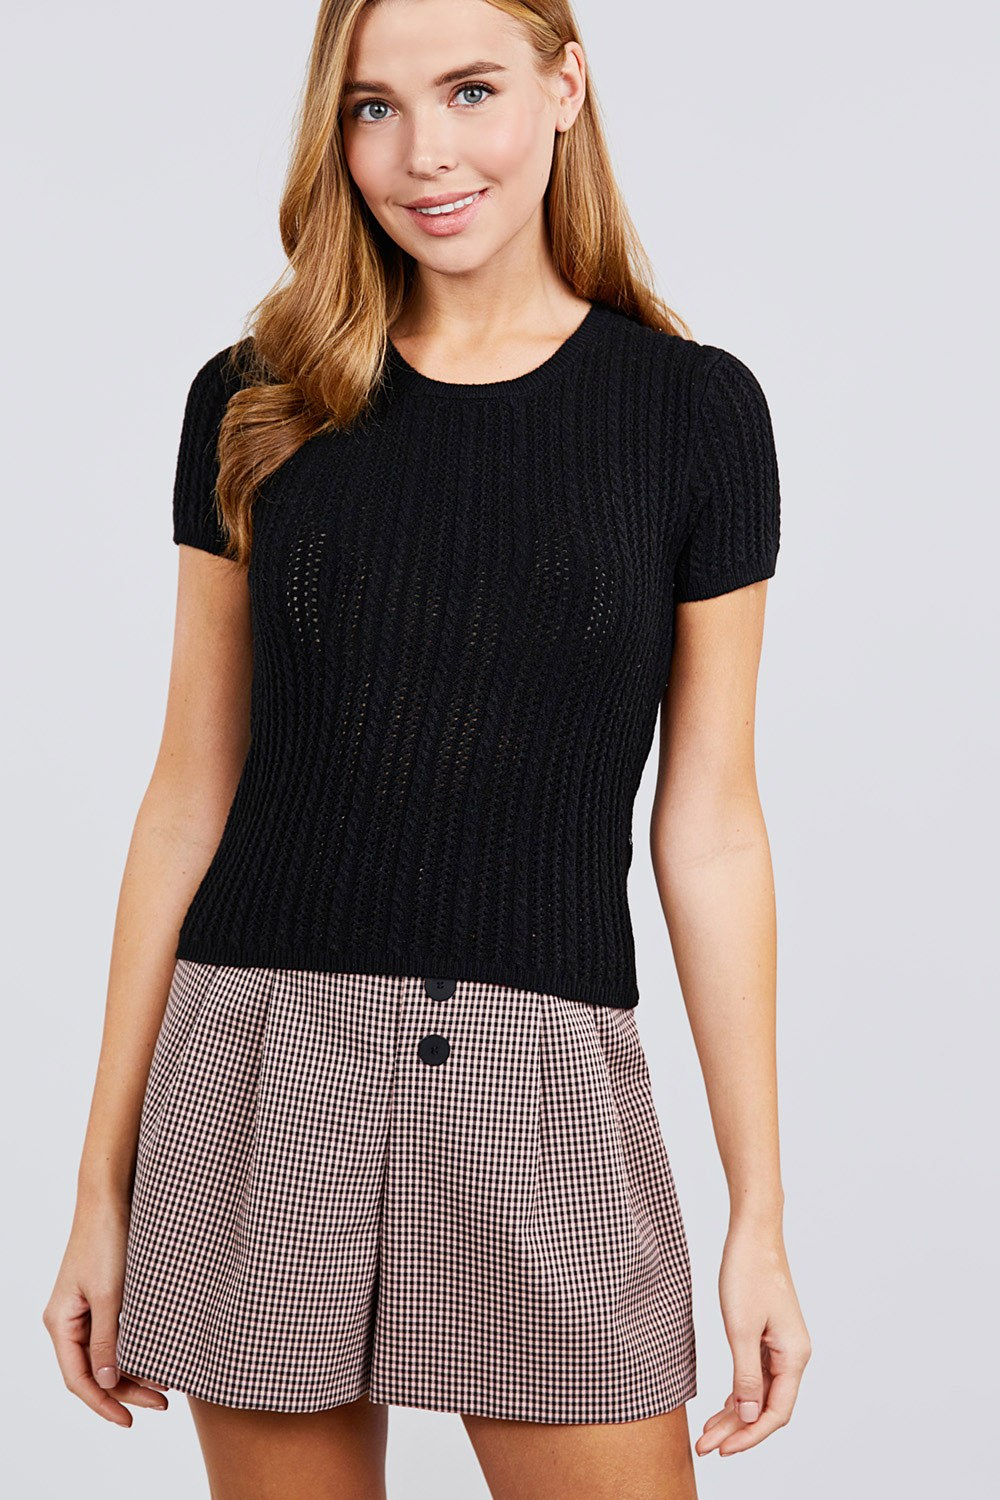 Short Slv Crew Neck Pointelle Sweater Top